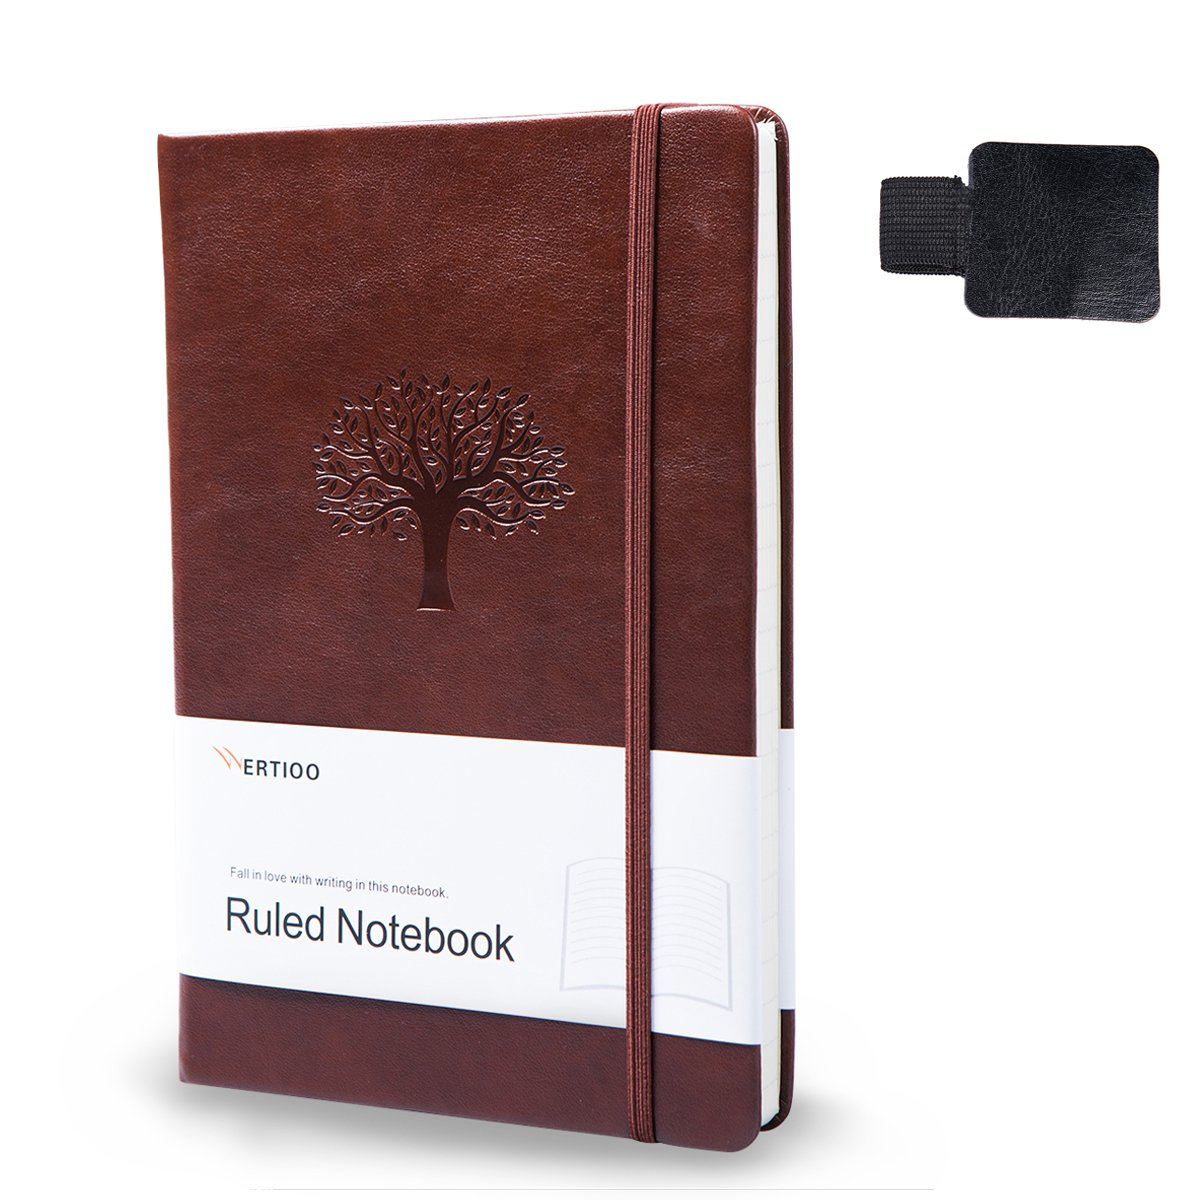 Ruled Journals/Notebooks,WERTIOO Leather Diary Hardcover Classic Writing notebook A5 Dotted Pages Thick Paper Business Gift for Men Women